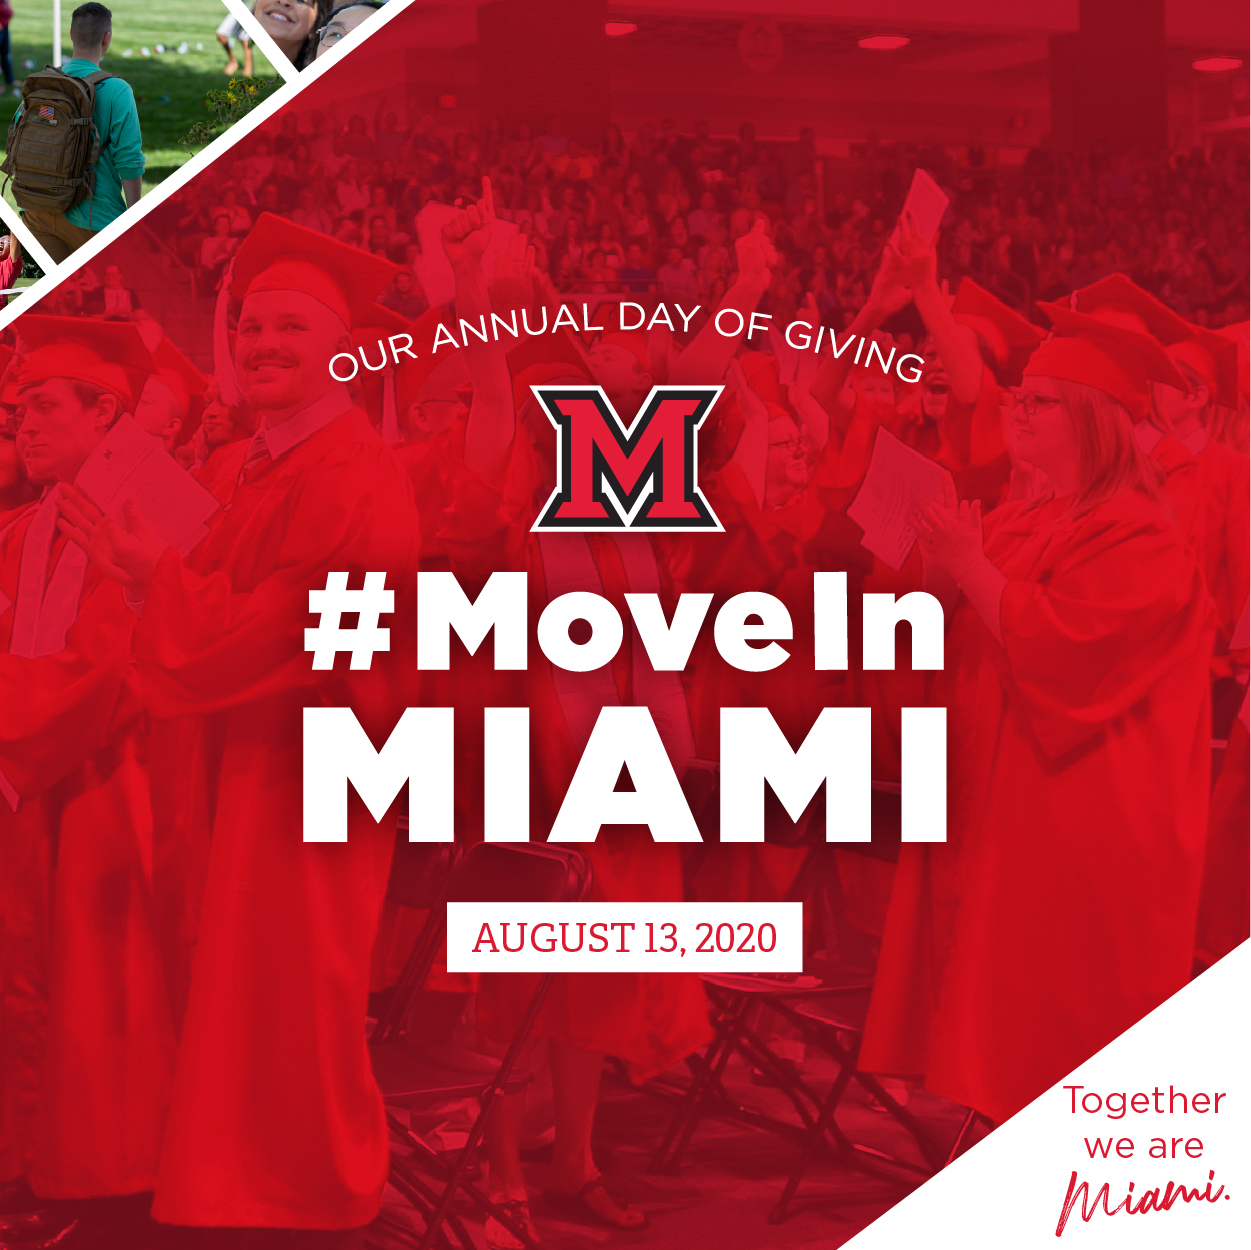 #MoveinMiami Annual Day of Giving August 13, 2020.